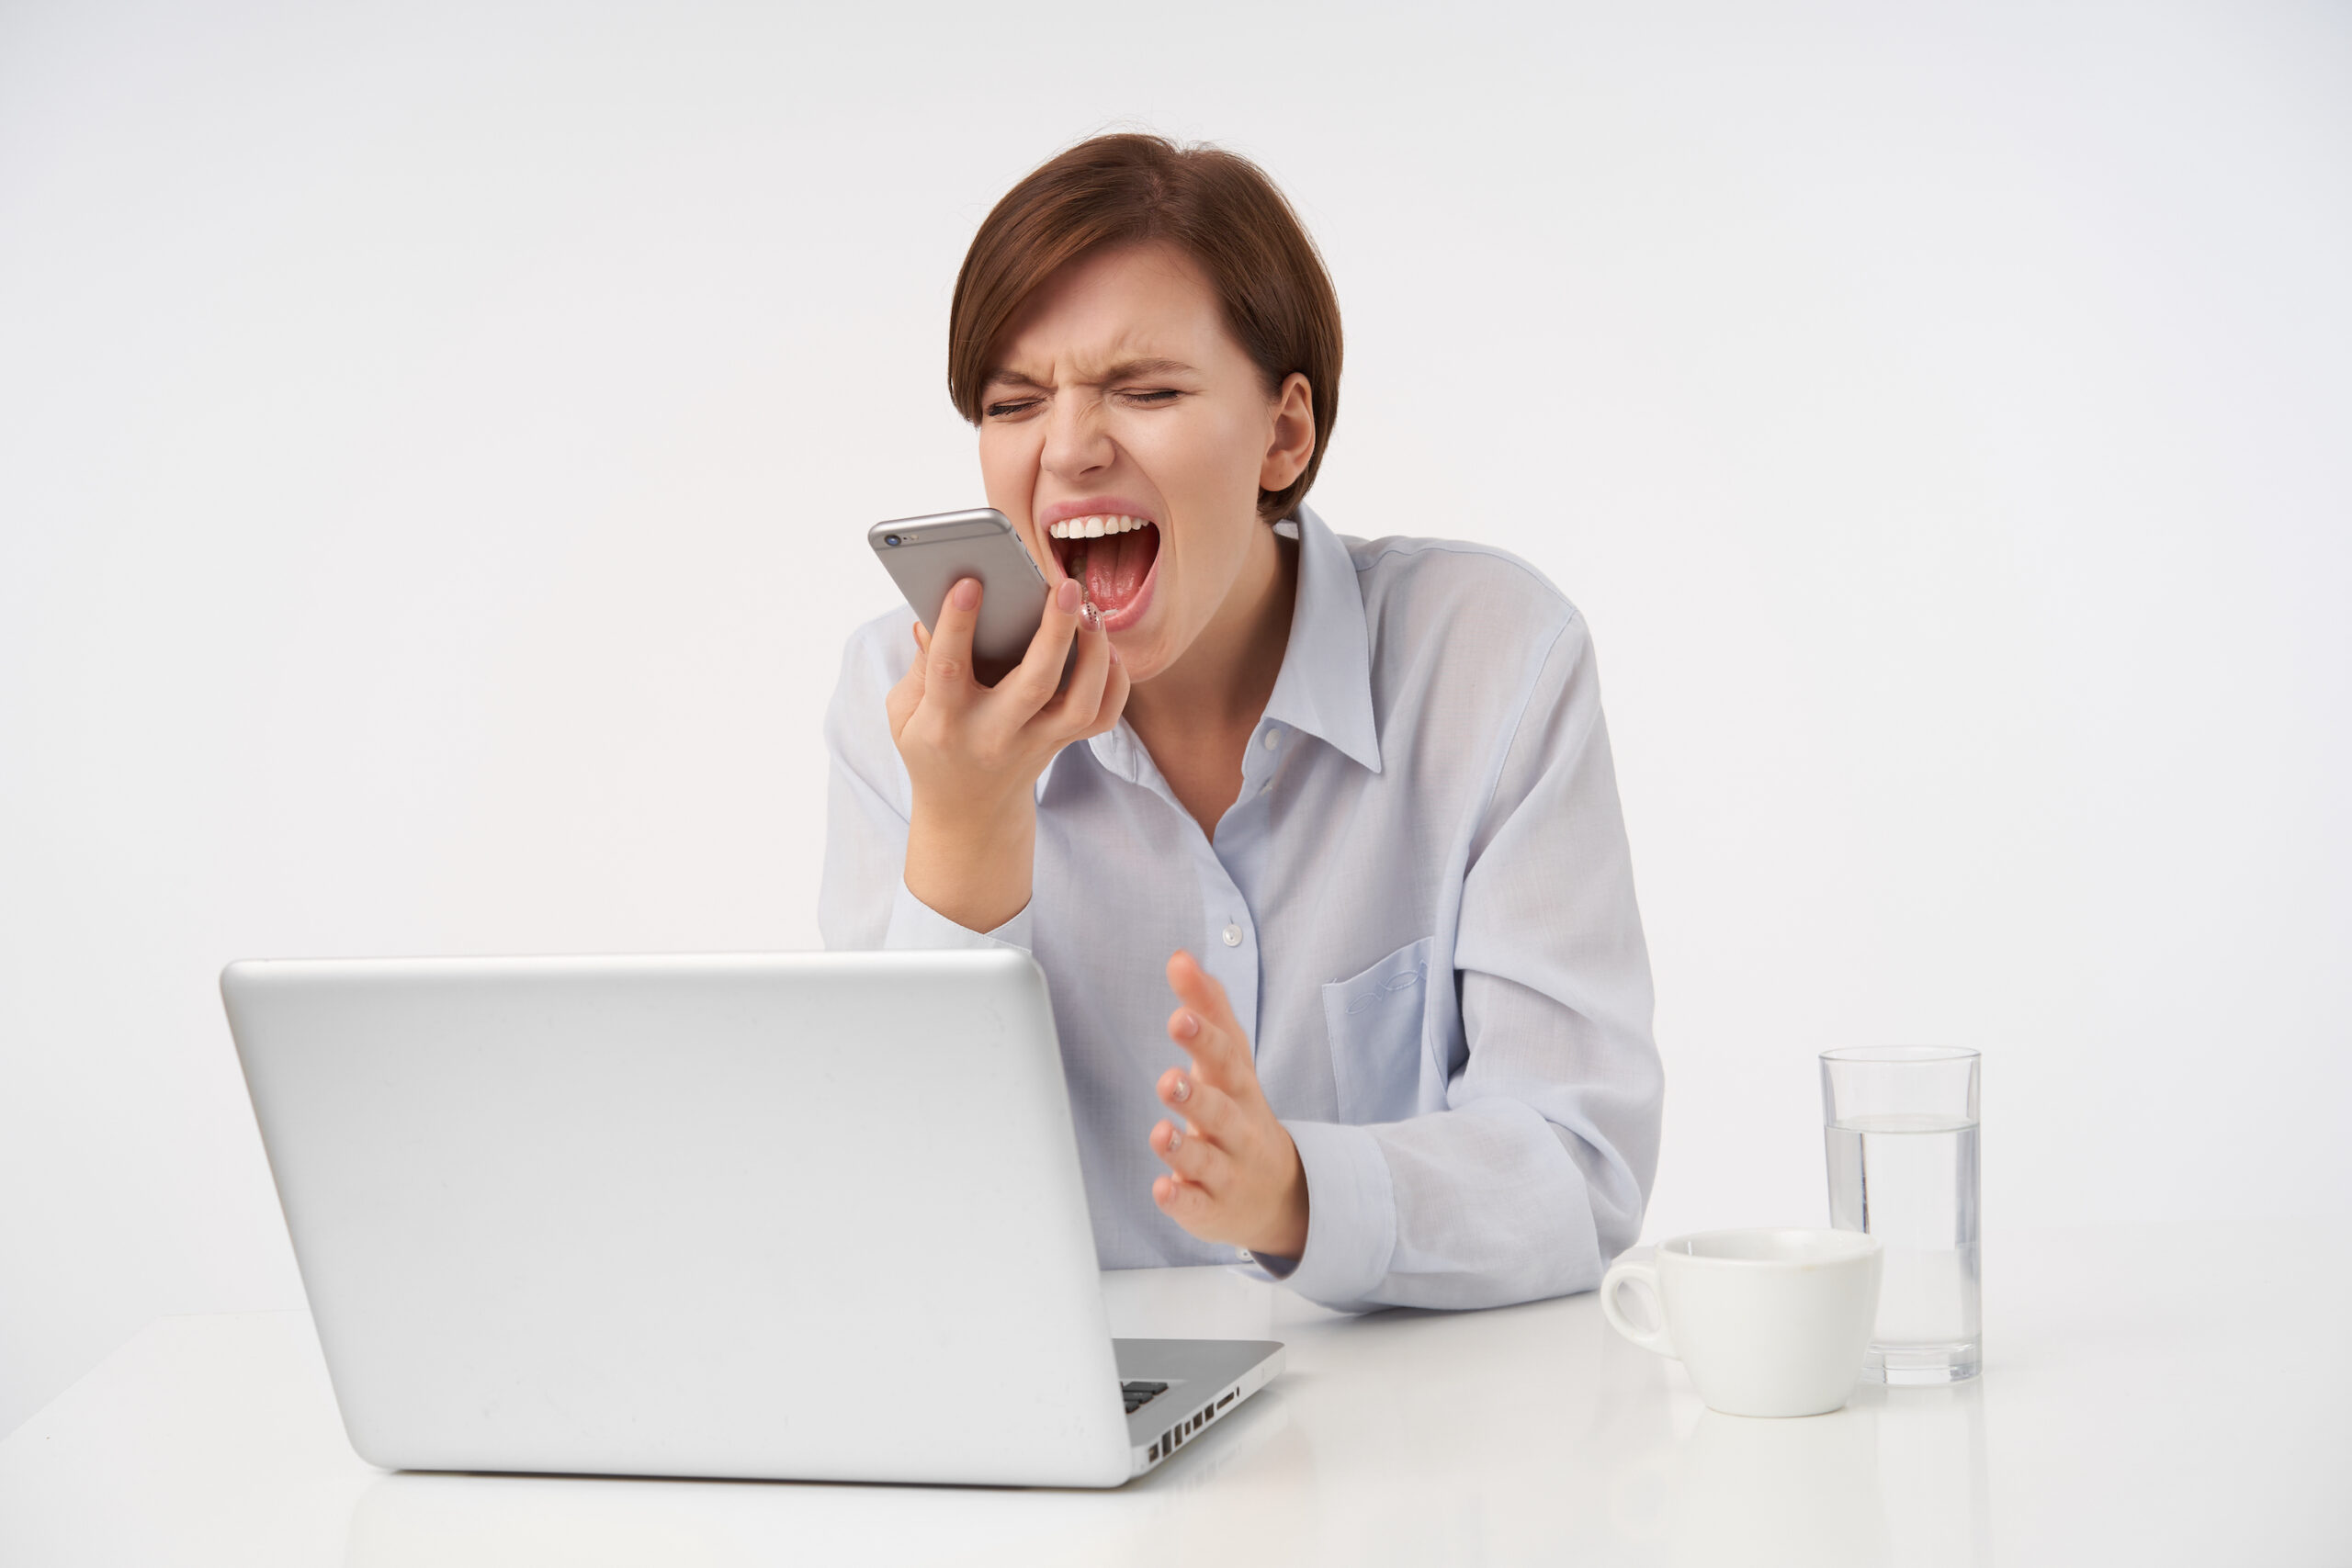 Stressed young short haired brunette woman frowning her face with closed eyes while shouting angrily into handset, having bad day at work, isolated over white background